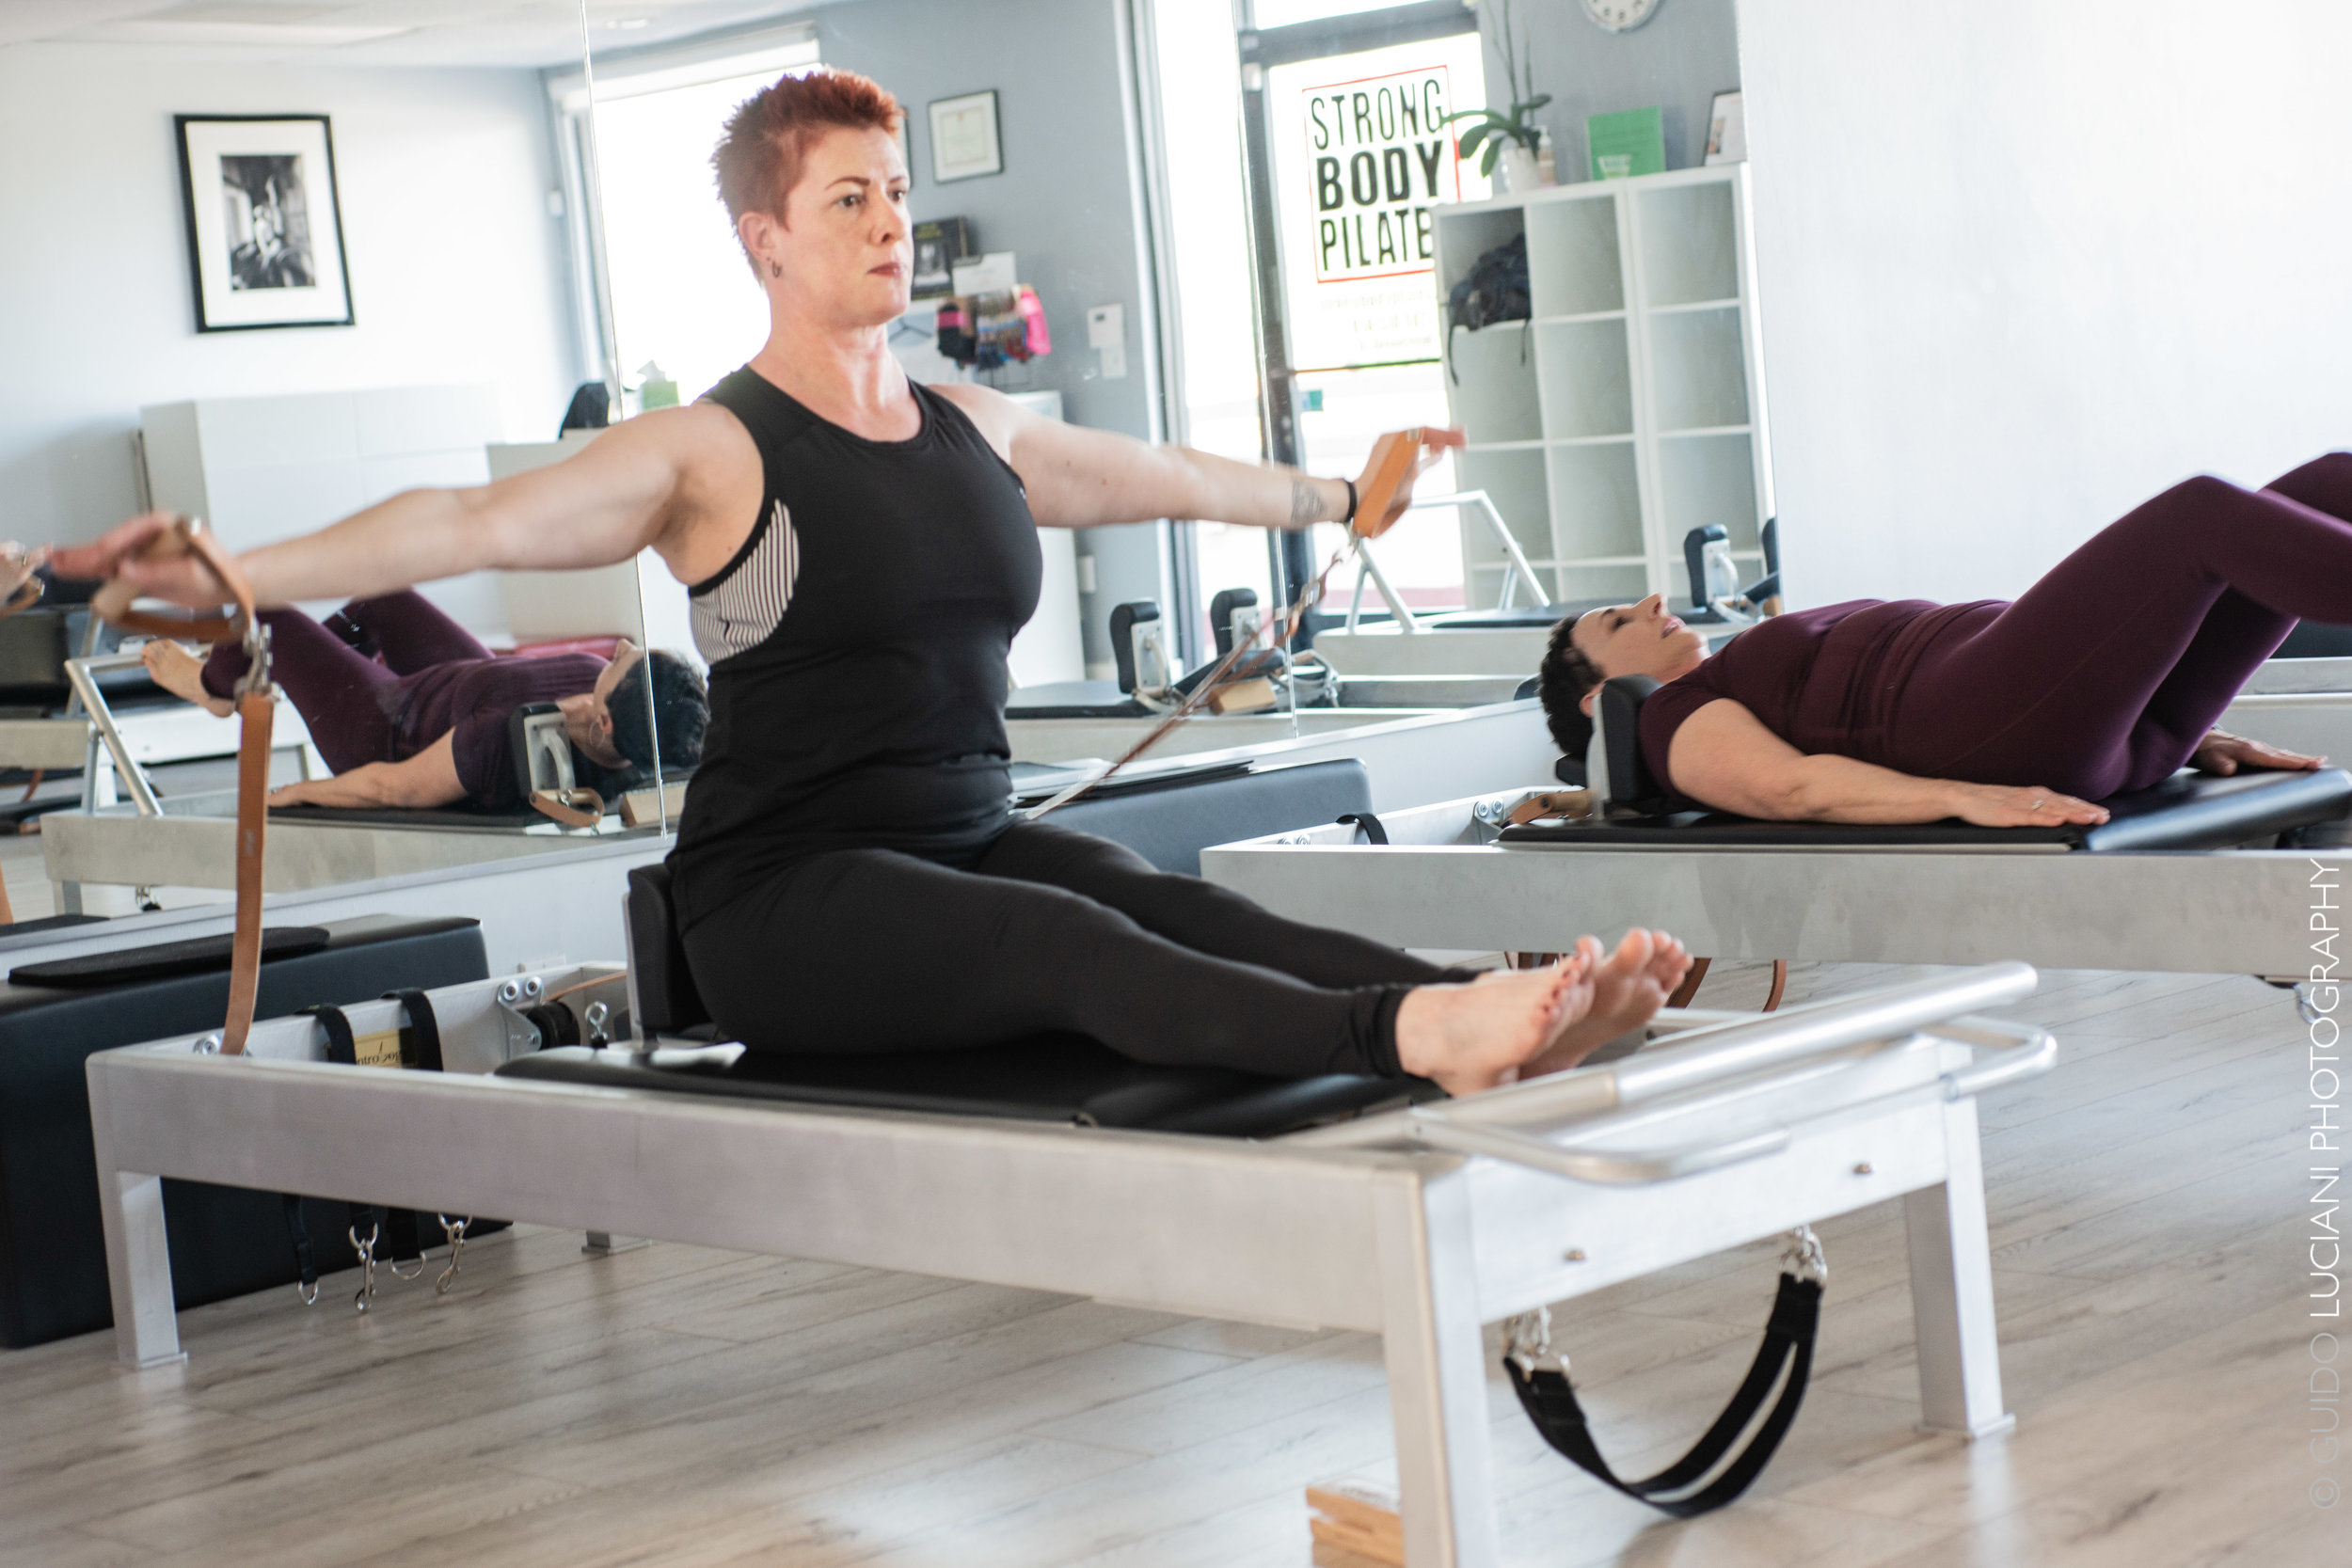 Nicole Briggs from Strong Body Pilates